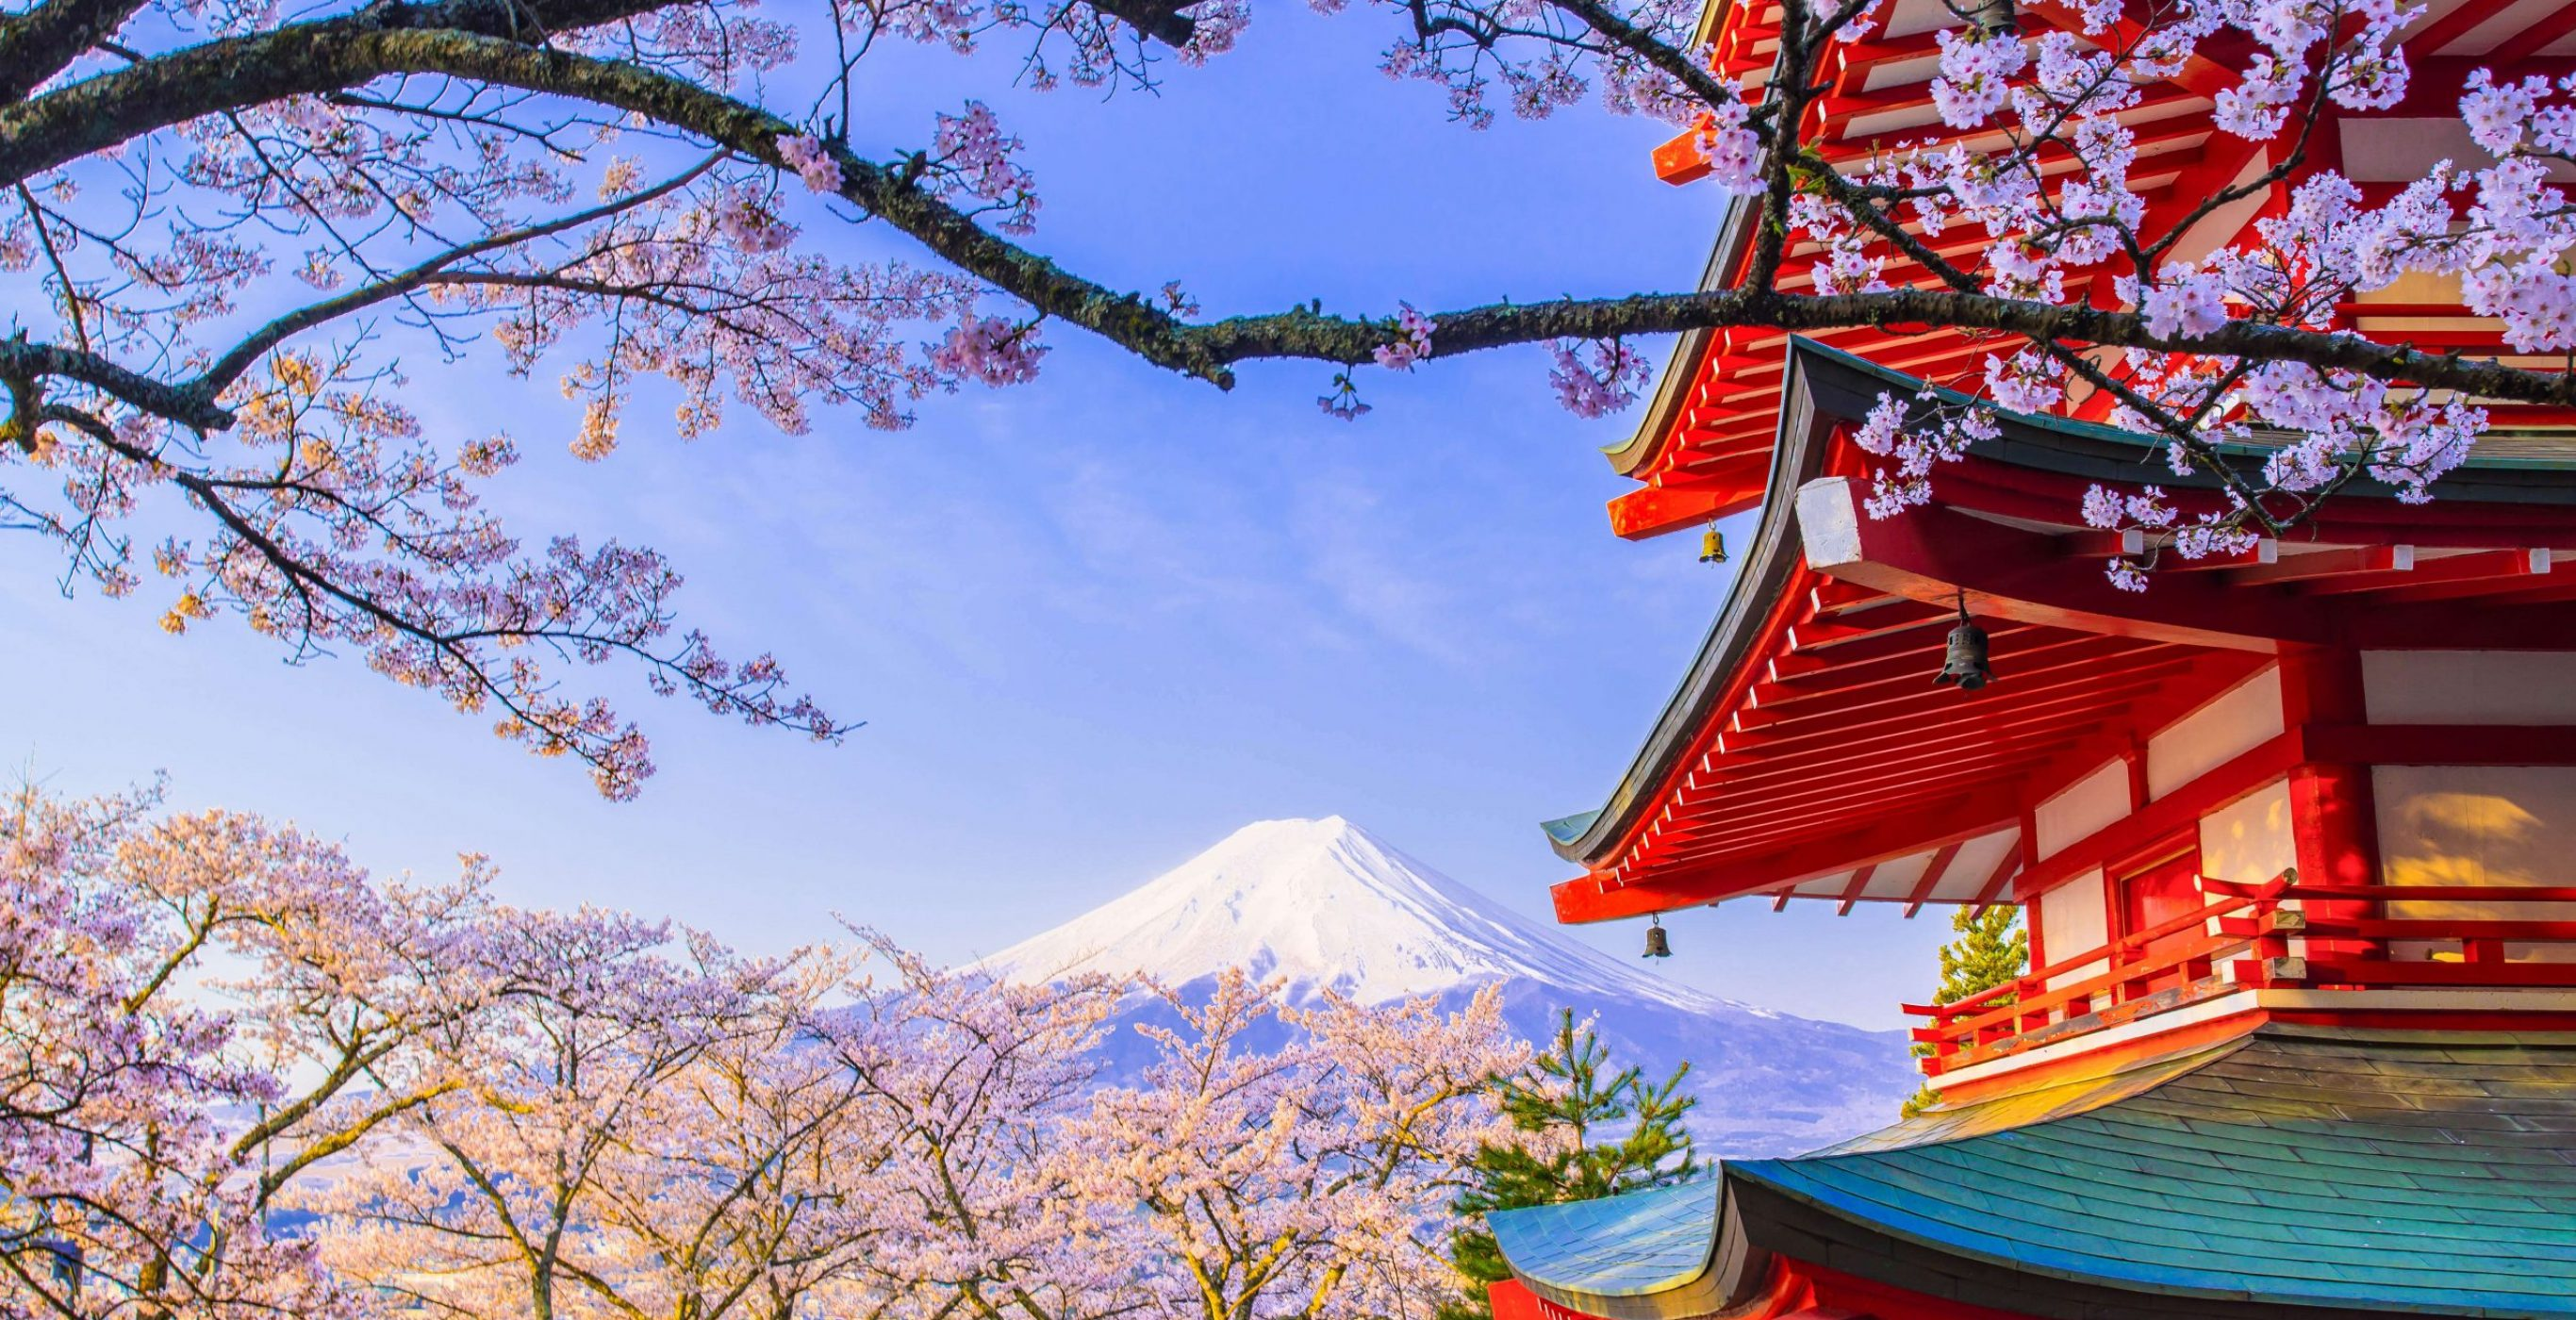 Hanami: The Japanese Celebration of Springtime and the Sakura | phmillennia.com | Featured Image by alpiniste074 on Flickr (modified)